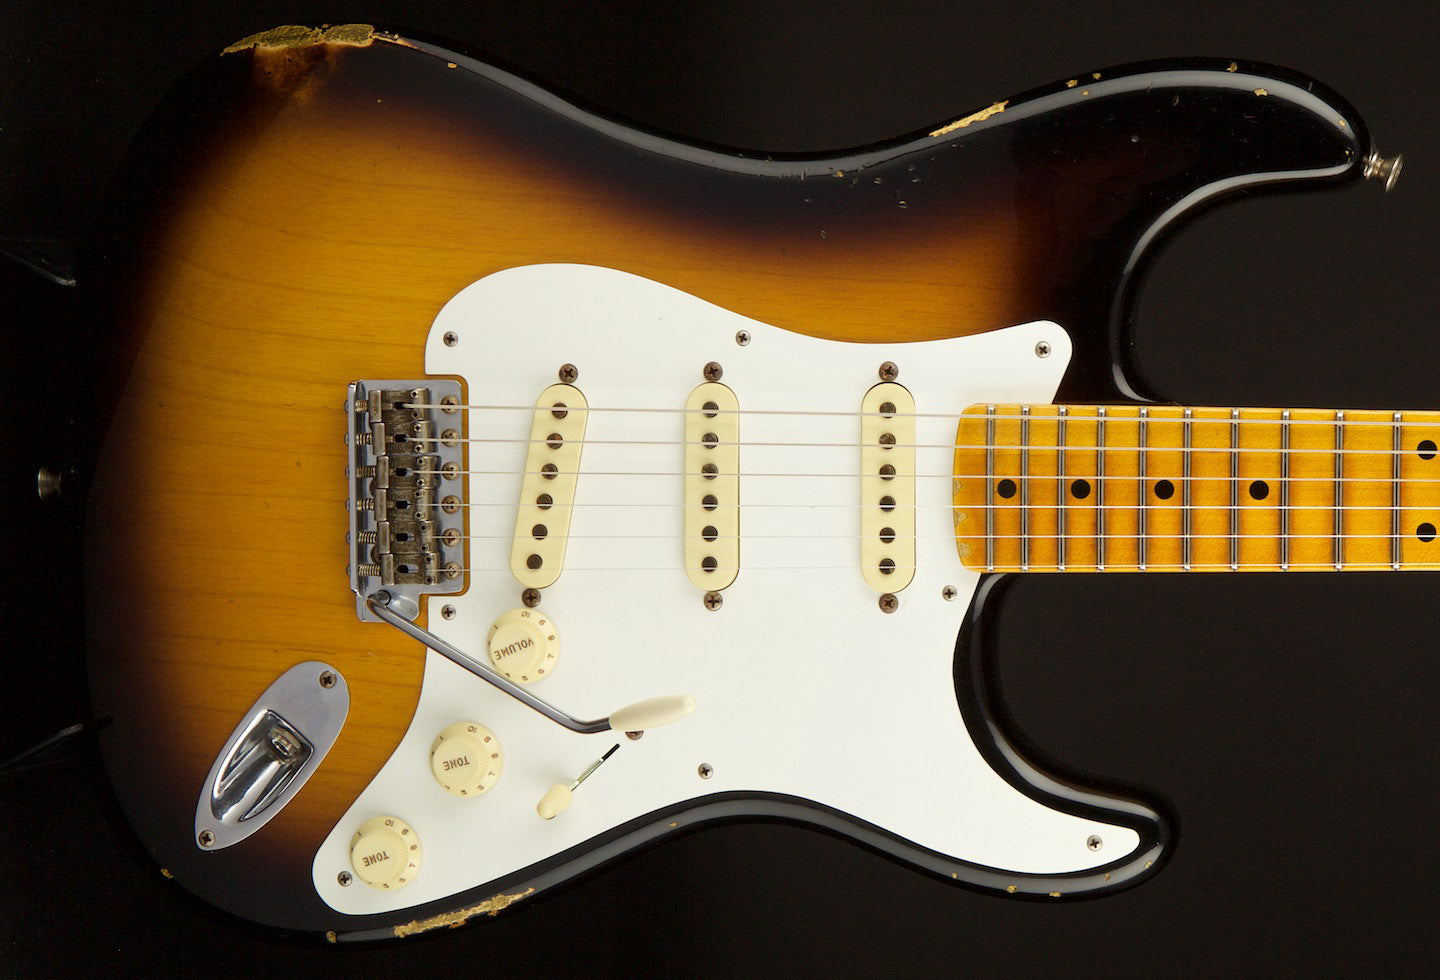 Fender Custom Shop Stratocaster NAMM 2015 Limited Edition 1955 Relic Sunburst #CZ521386